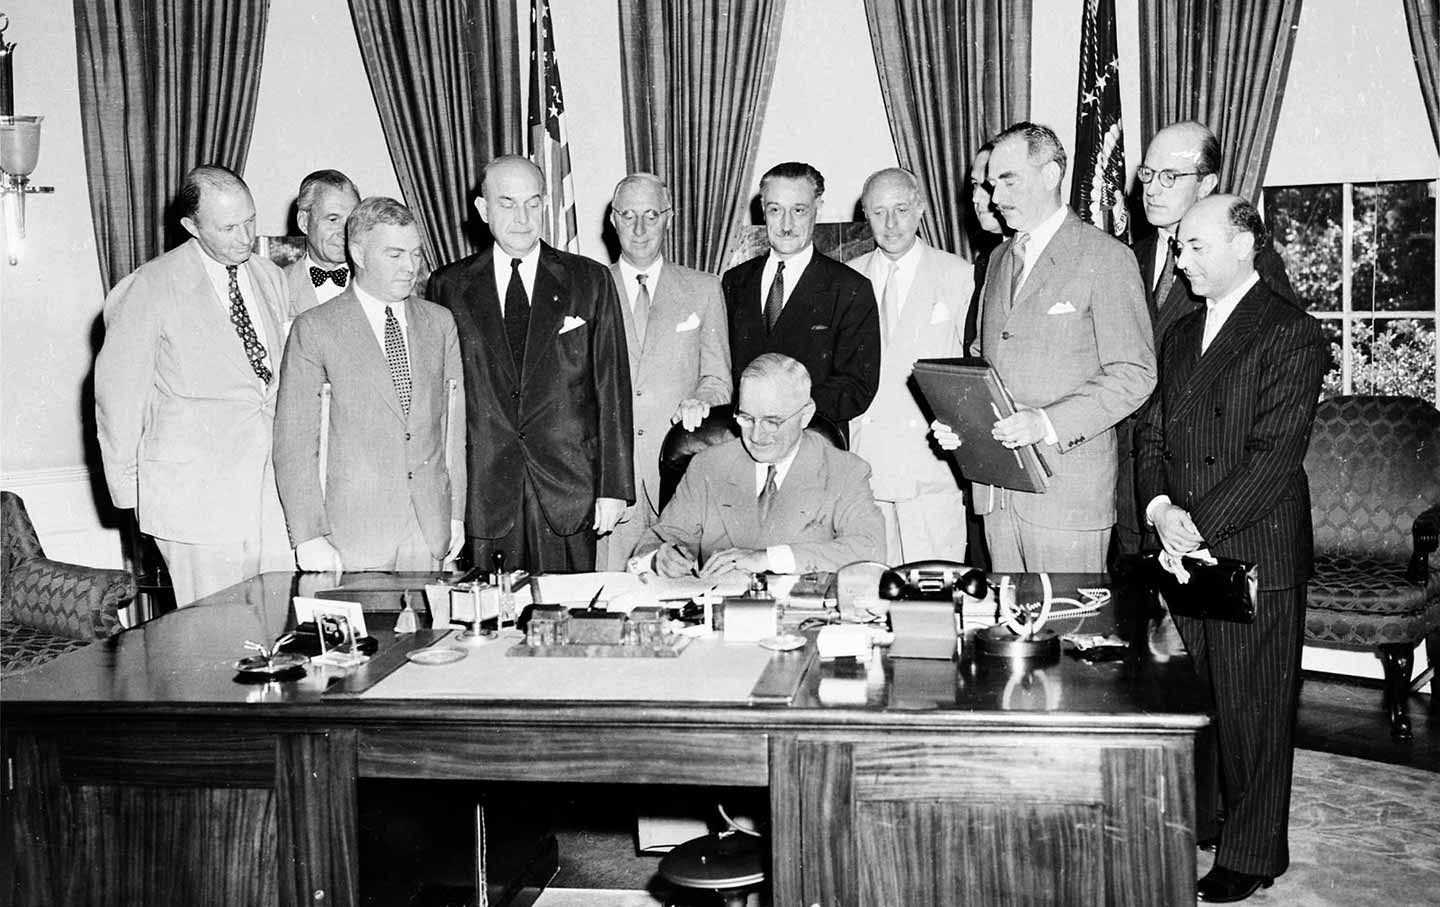 Truman signs the North Atlantic Treat in 1949